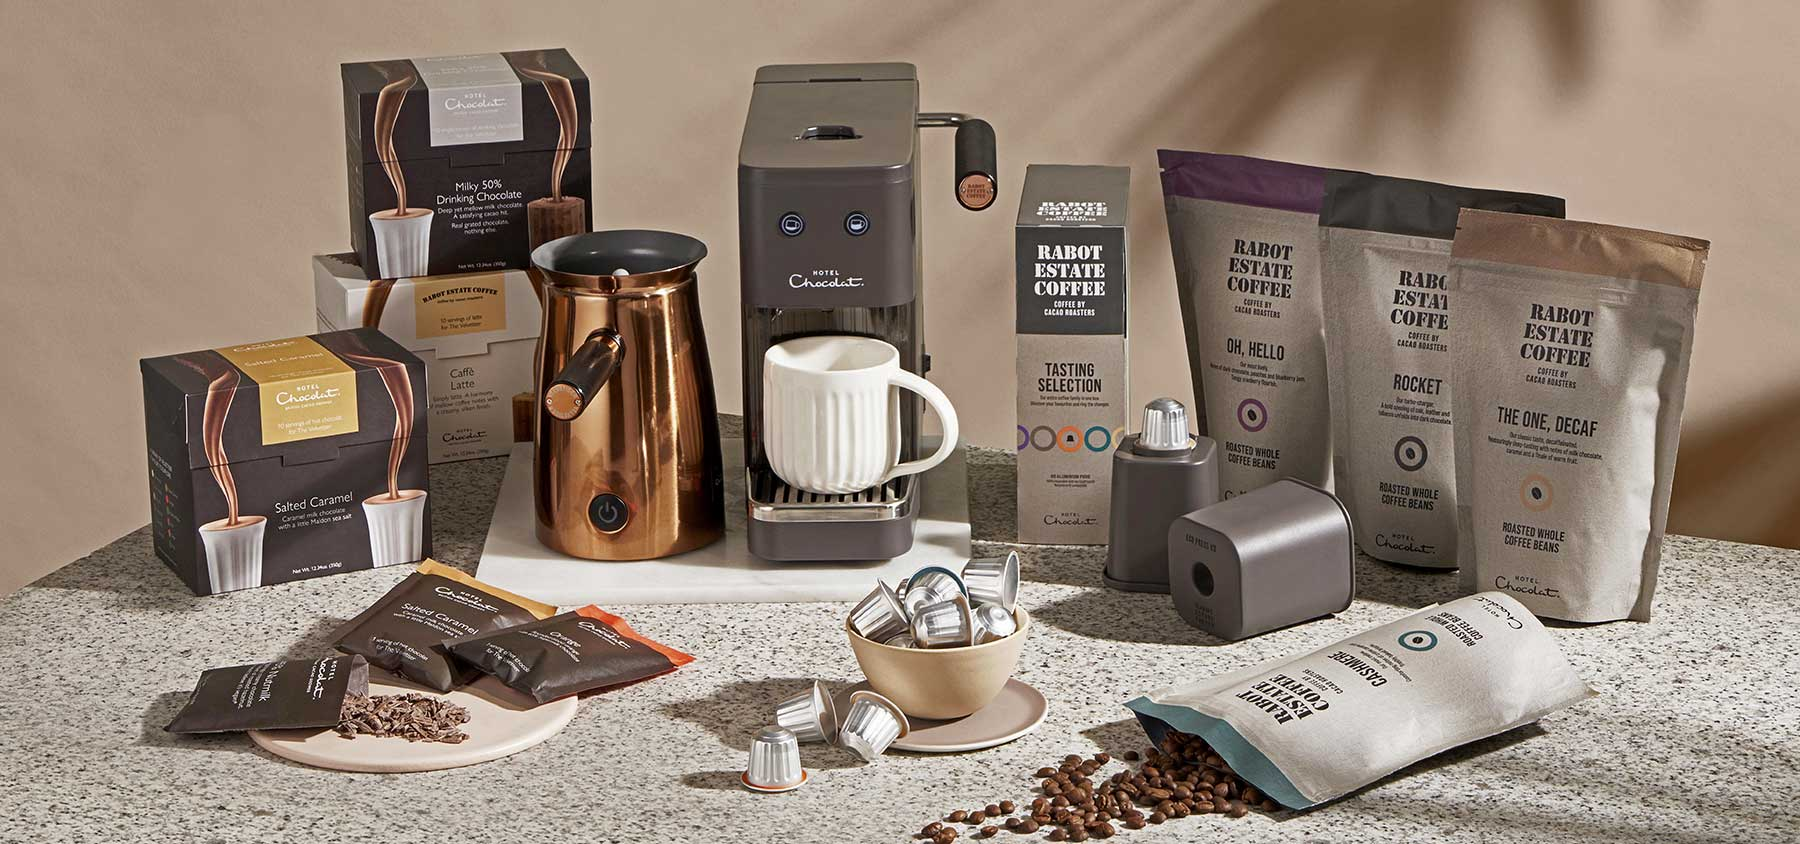 Rabot Estate Coffee Subscriptions